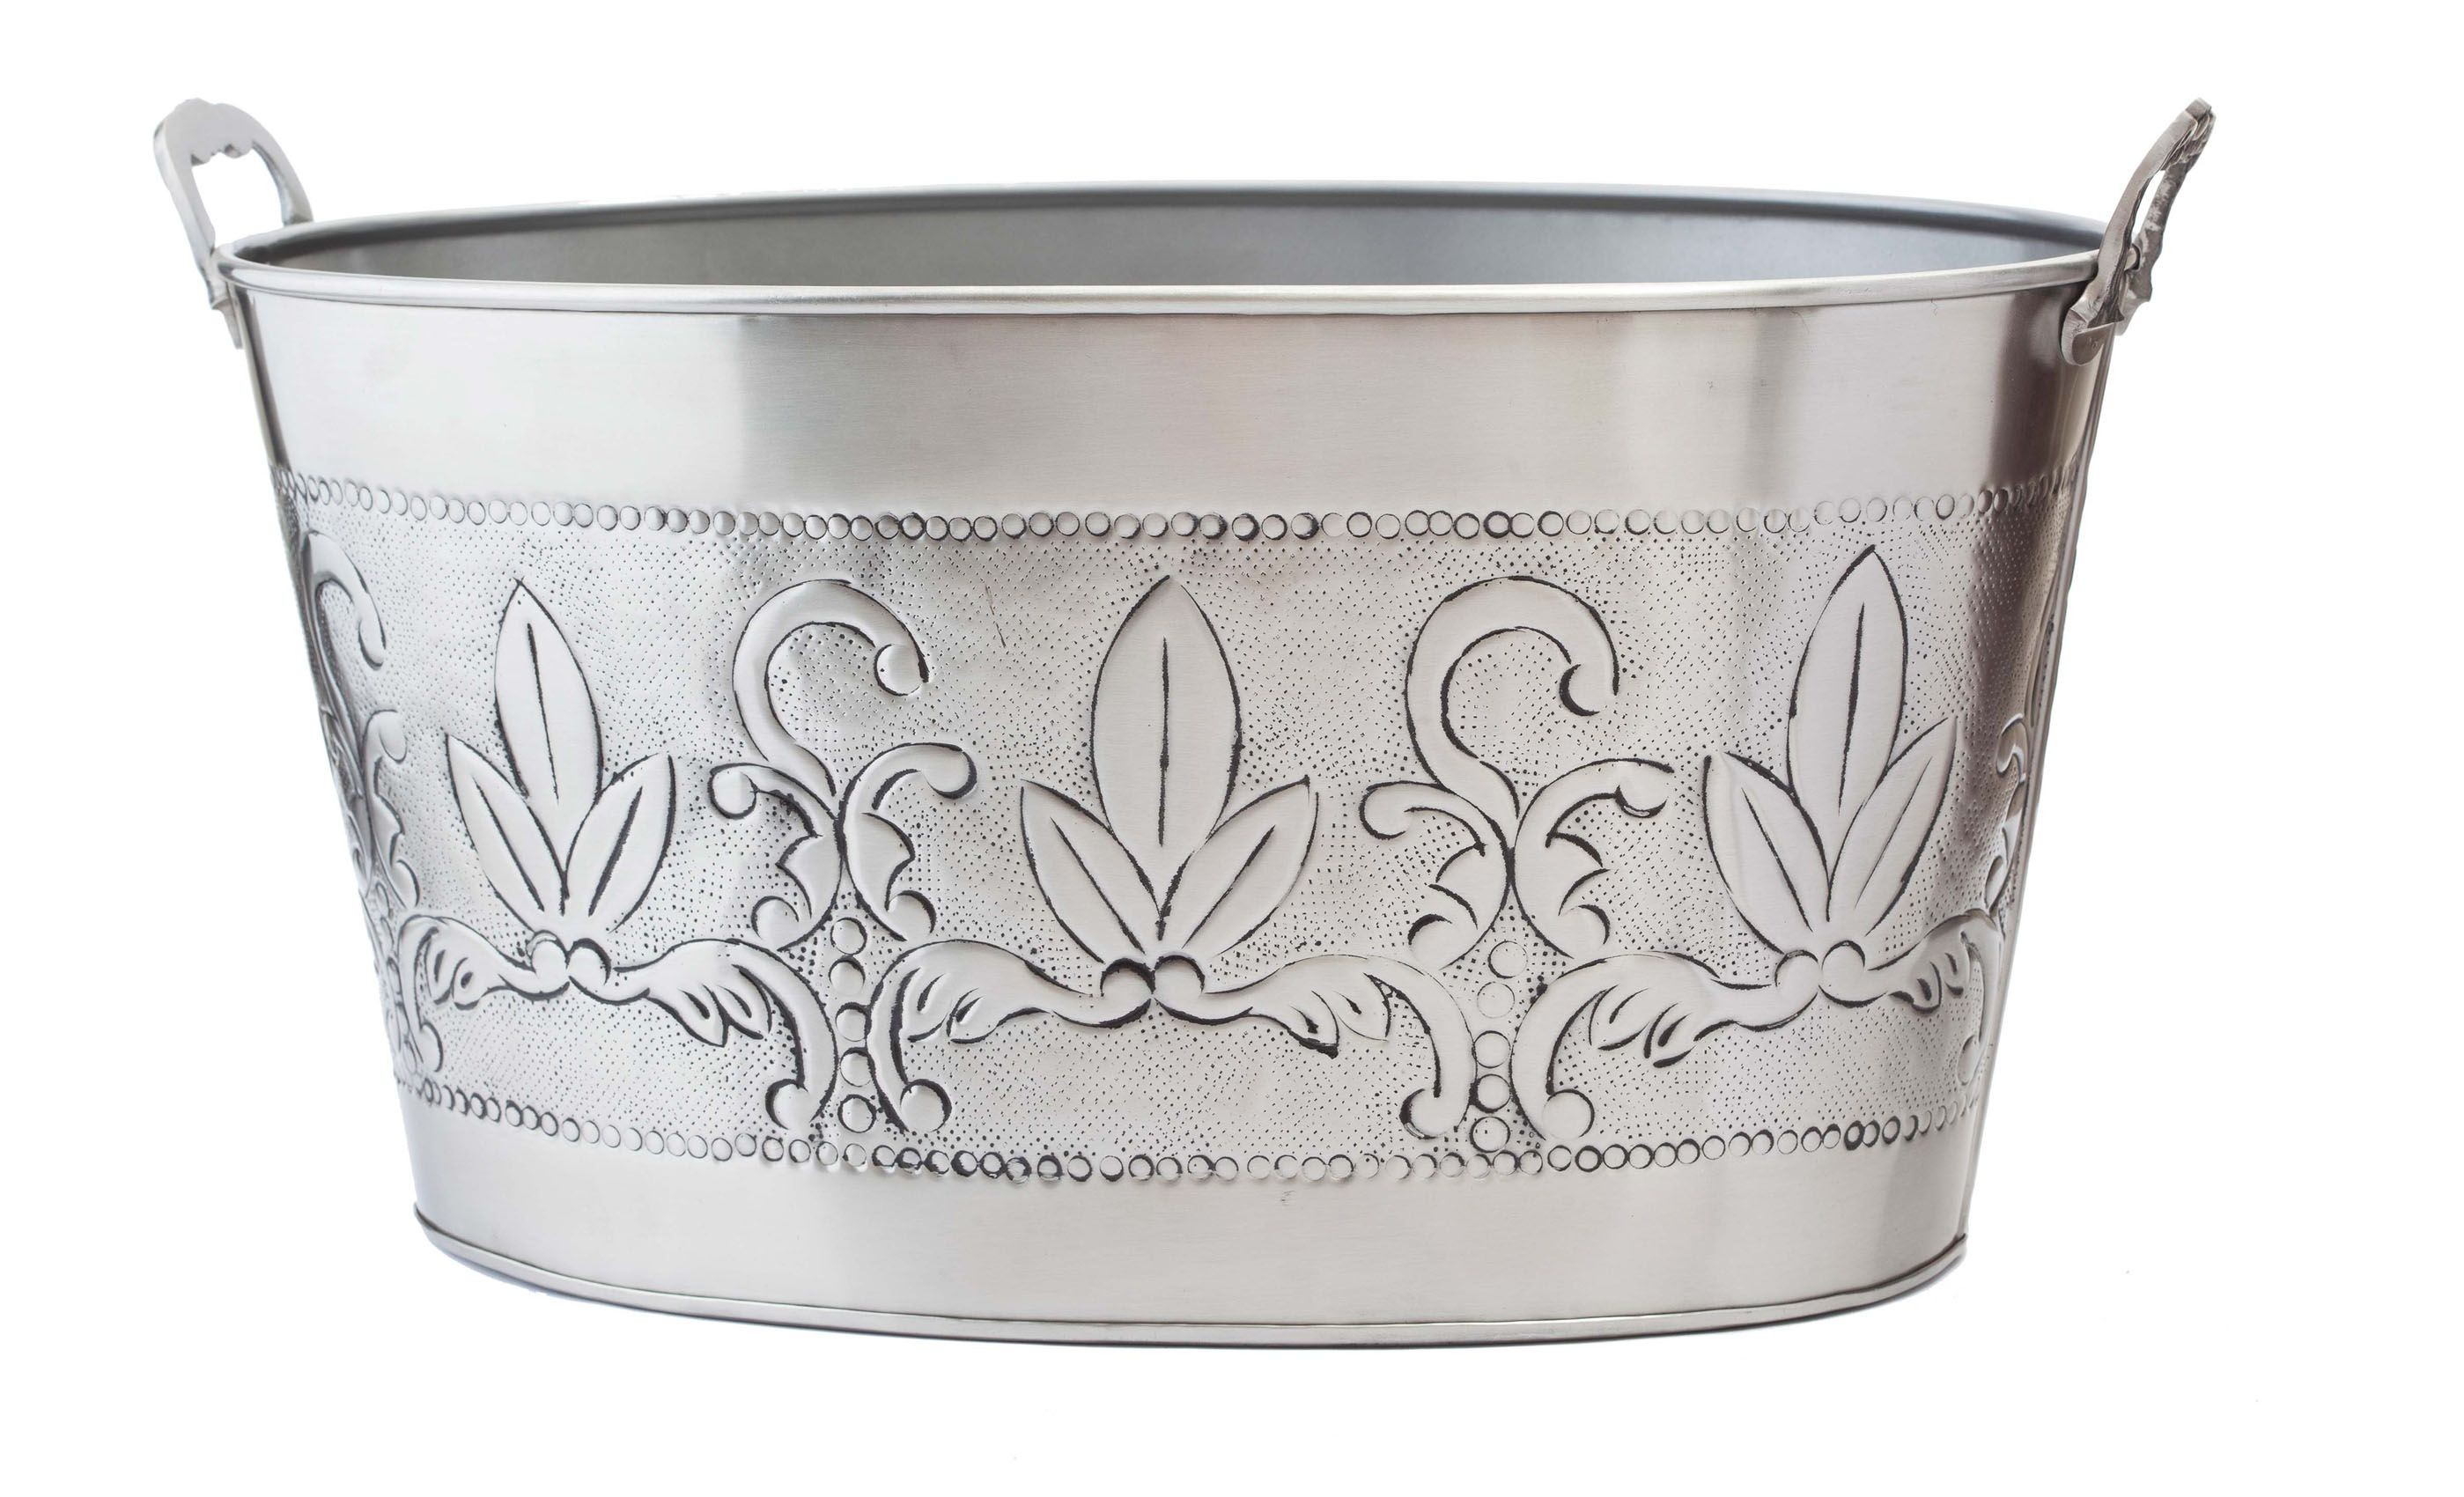 Old Dutch International 436 Antique Embossed Victoria Party Tub with Aluminum Handles, 5 1/2 Gallon